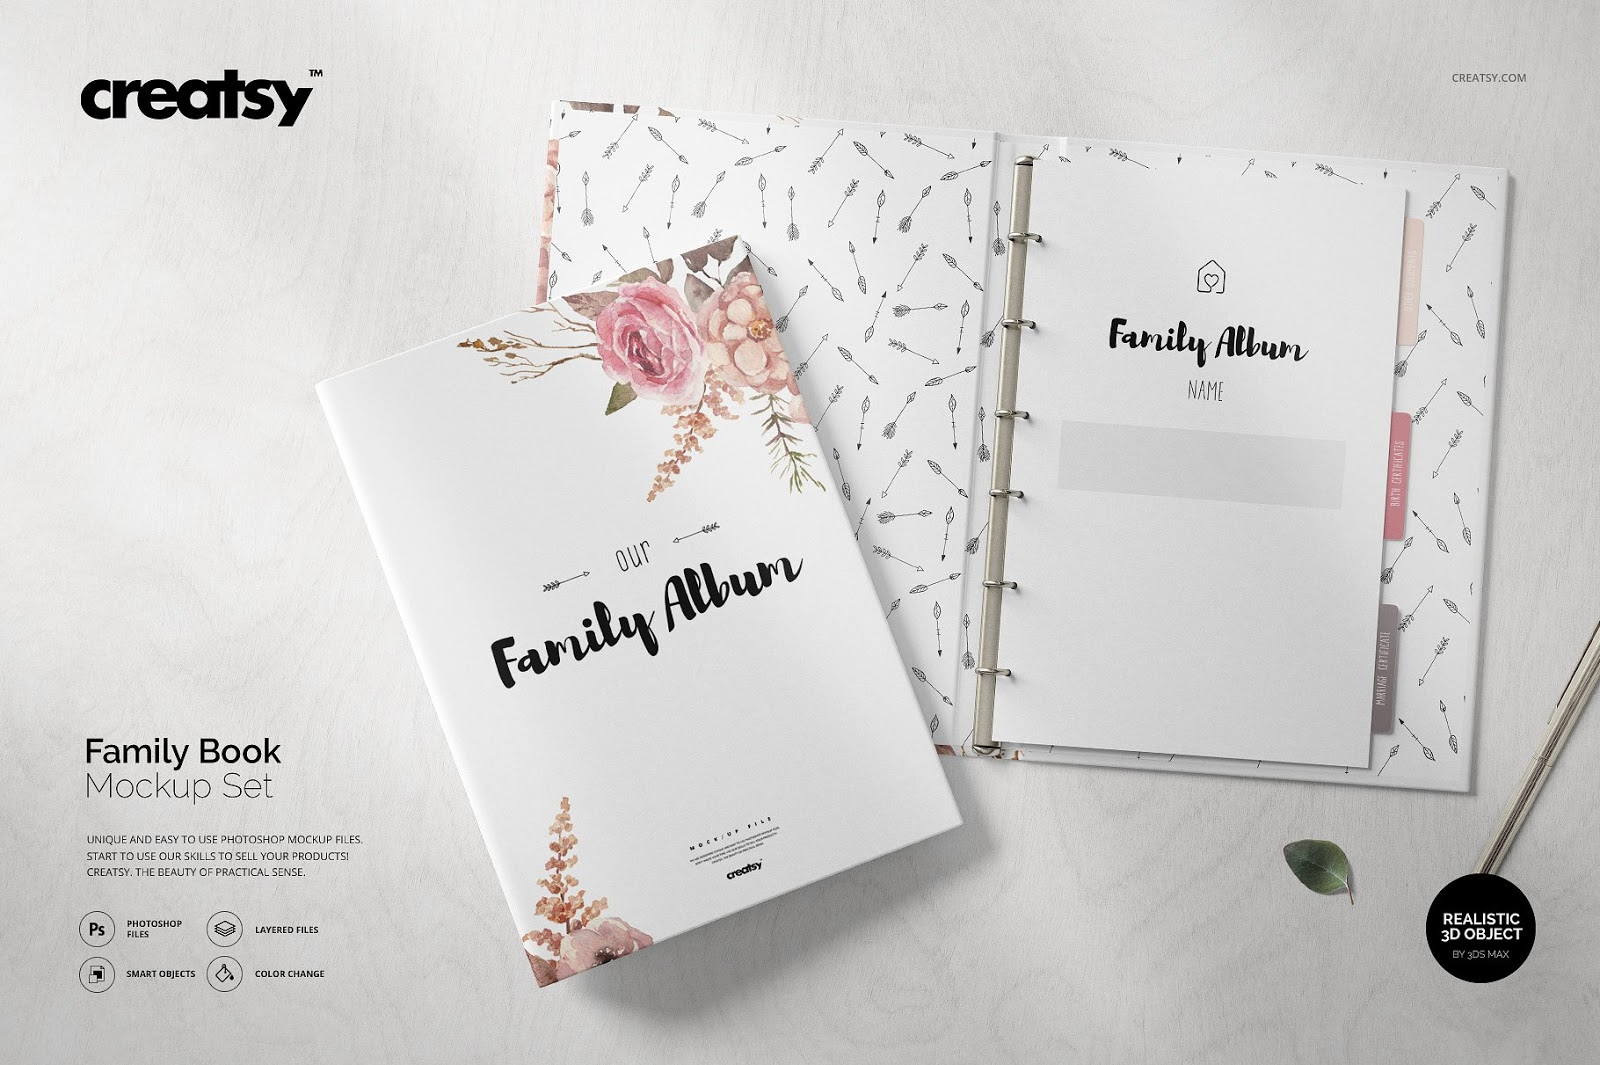 Family Book Mockup Set